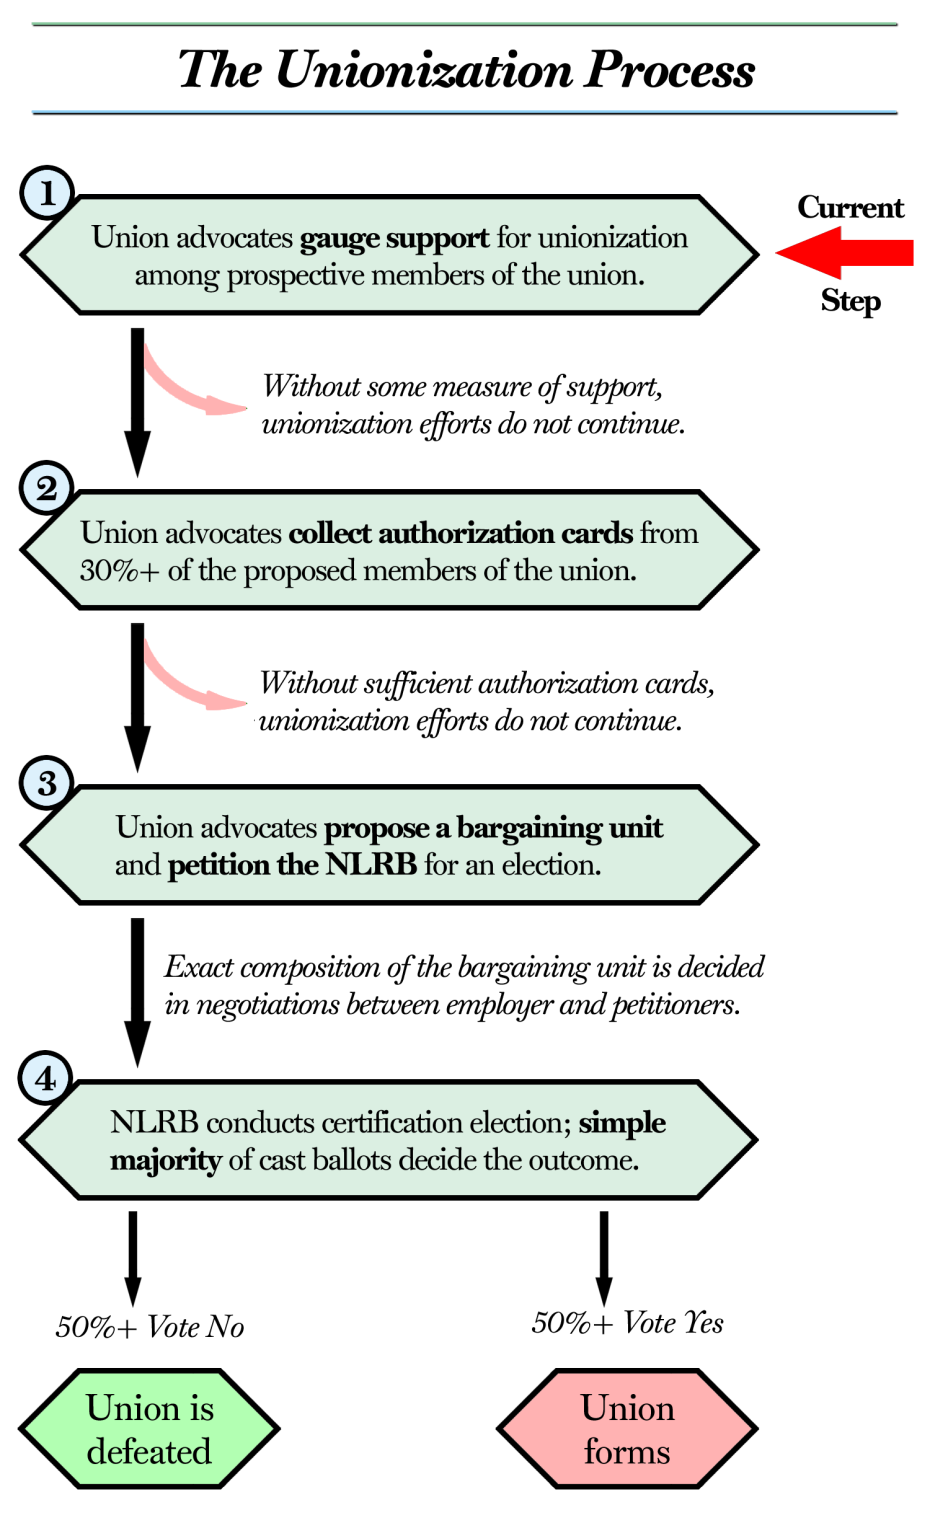 unionization process flowchart 1 copy.png